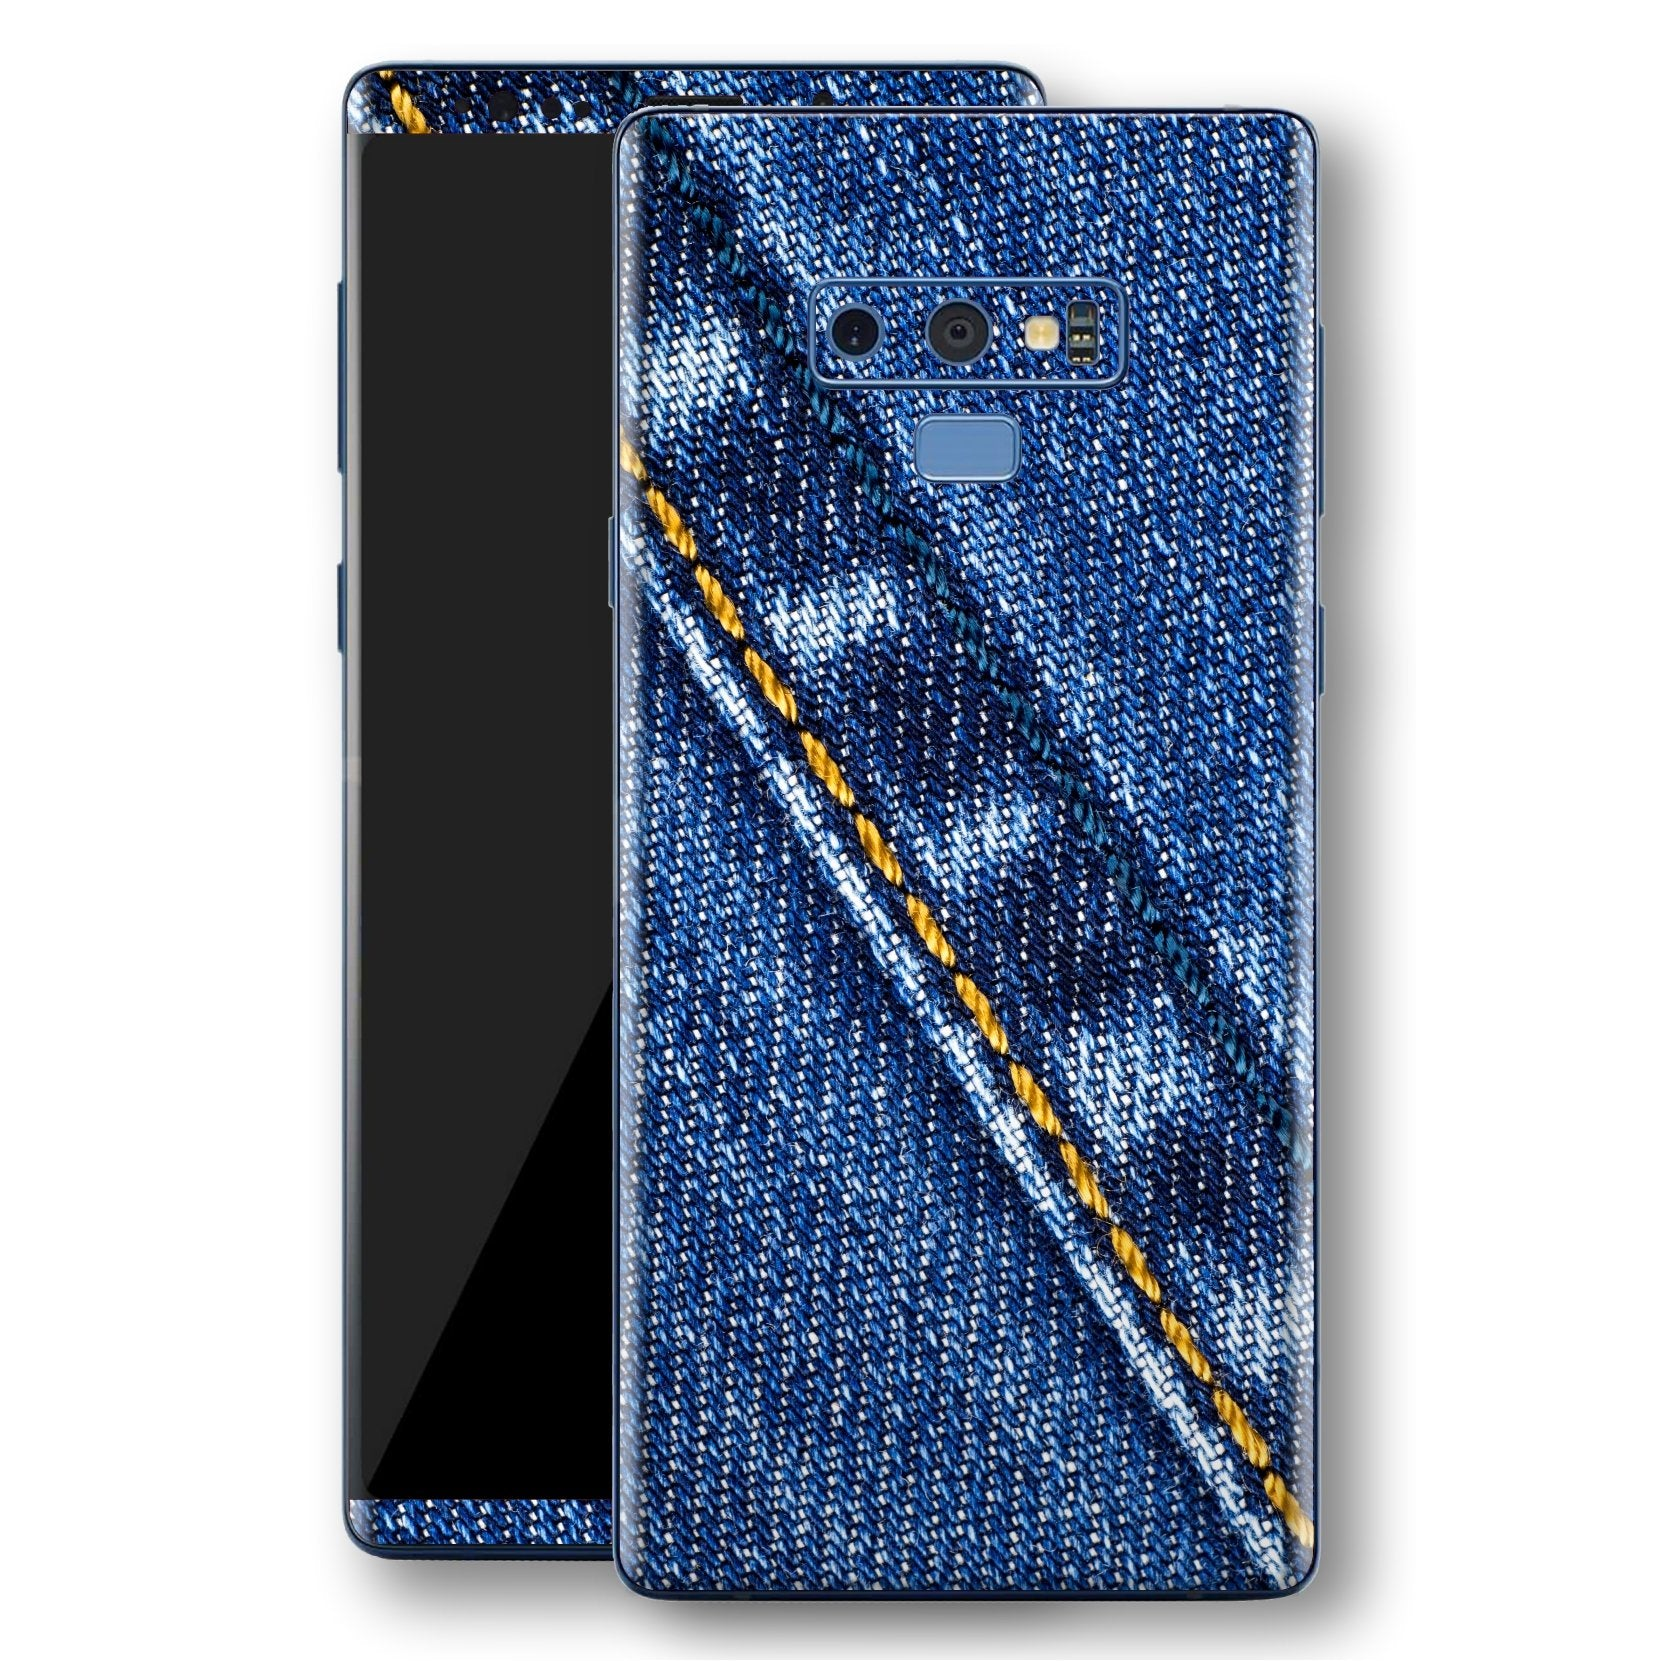 Samsung Galaxy NOTE 9 Signature Blue Jeans Skin Wrap Decal Protector | EasySkinz